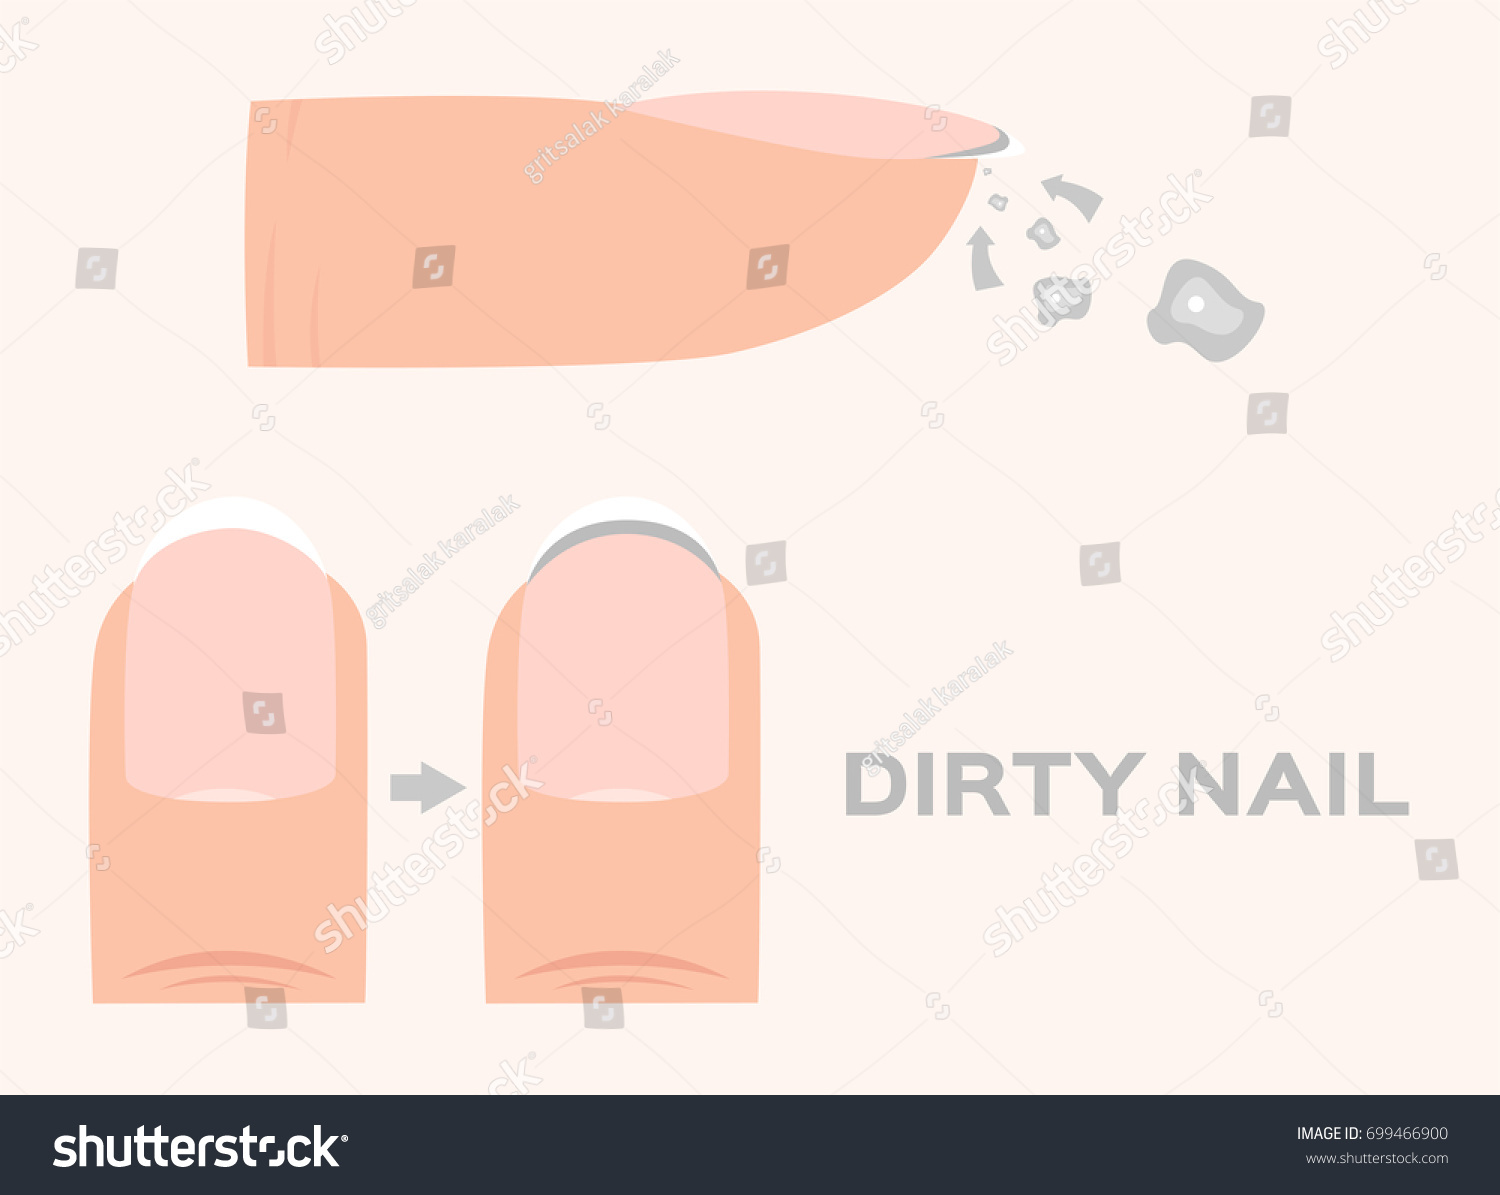 Structure Dirty Finger Nail Human Anatomy Stock Vector Royalty Free